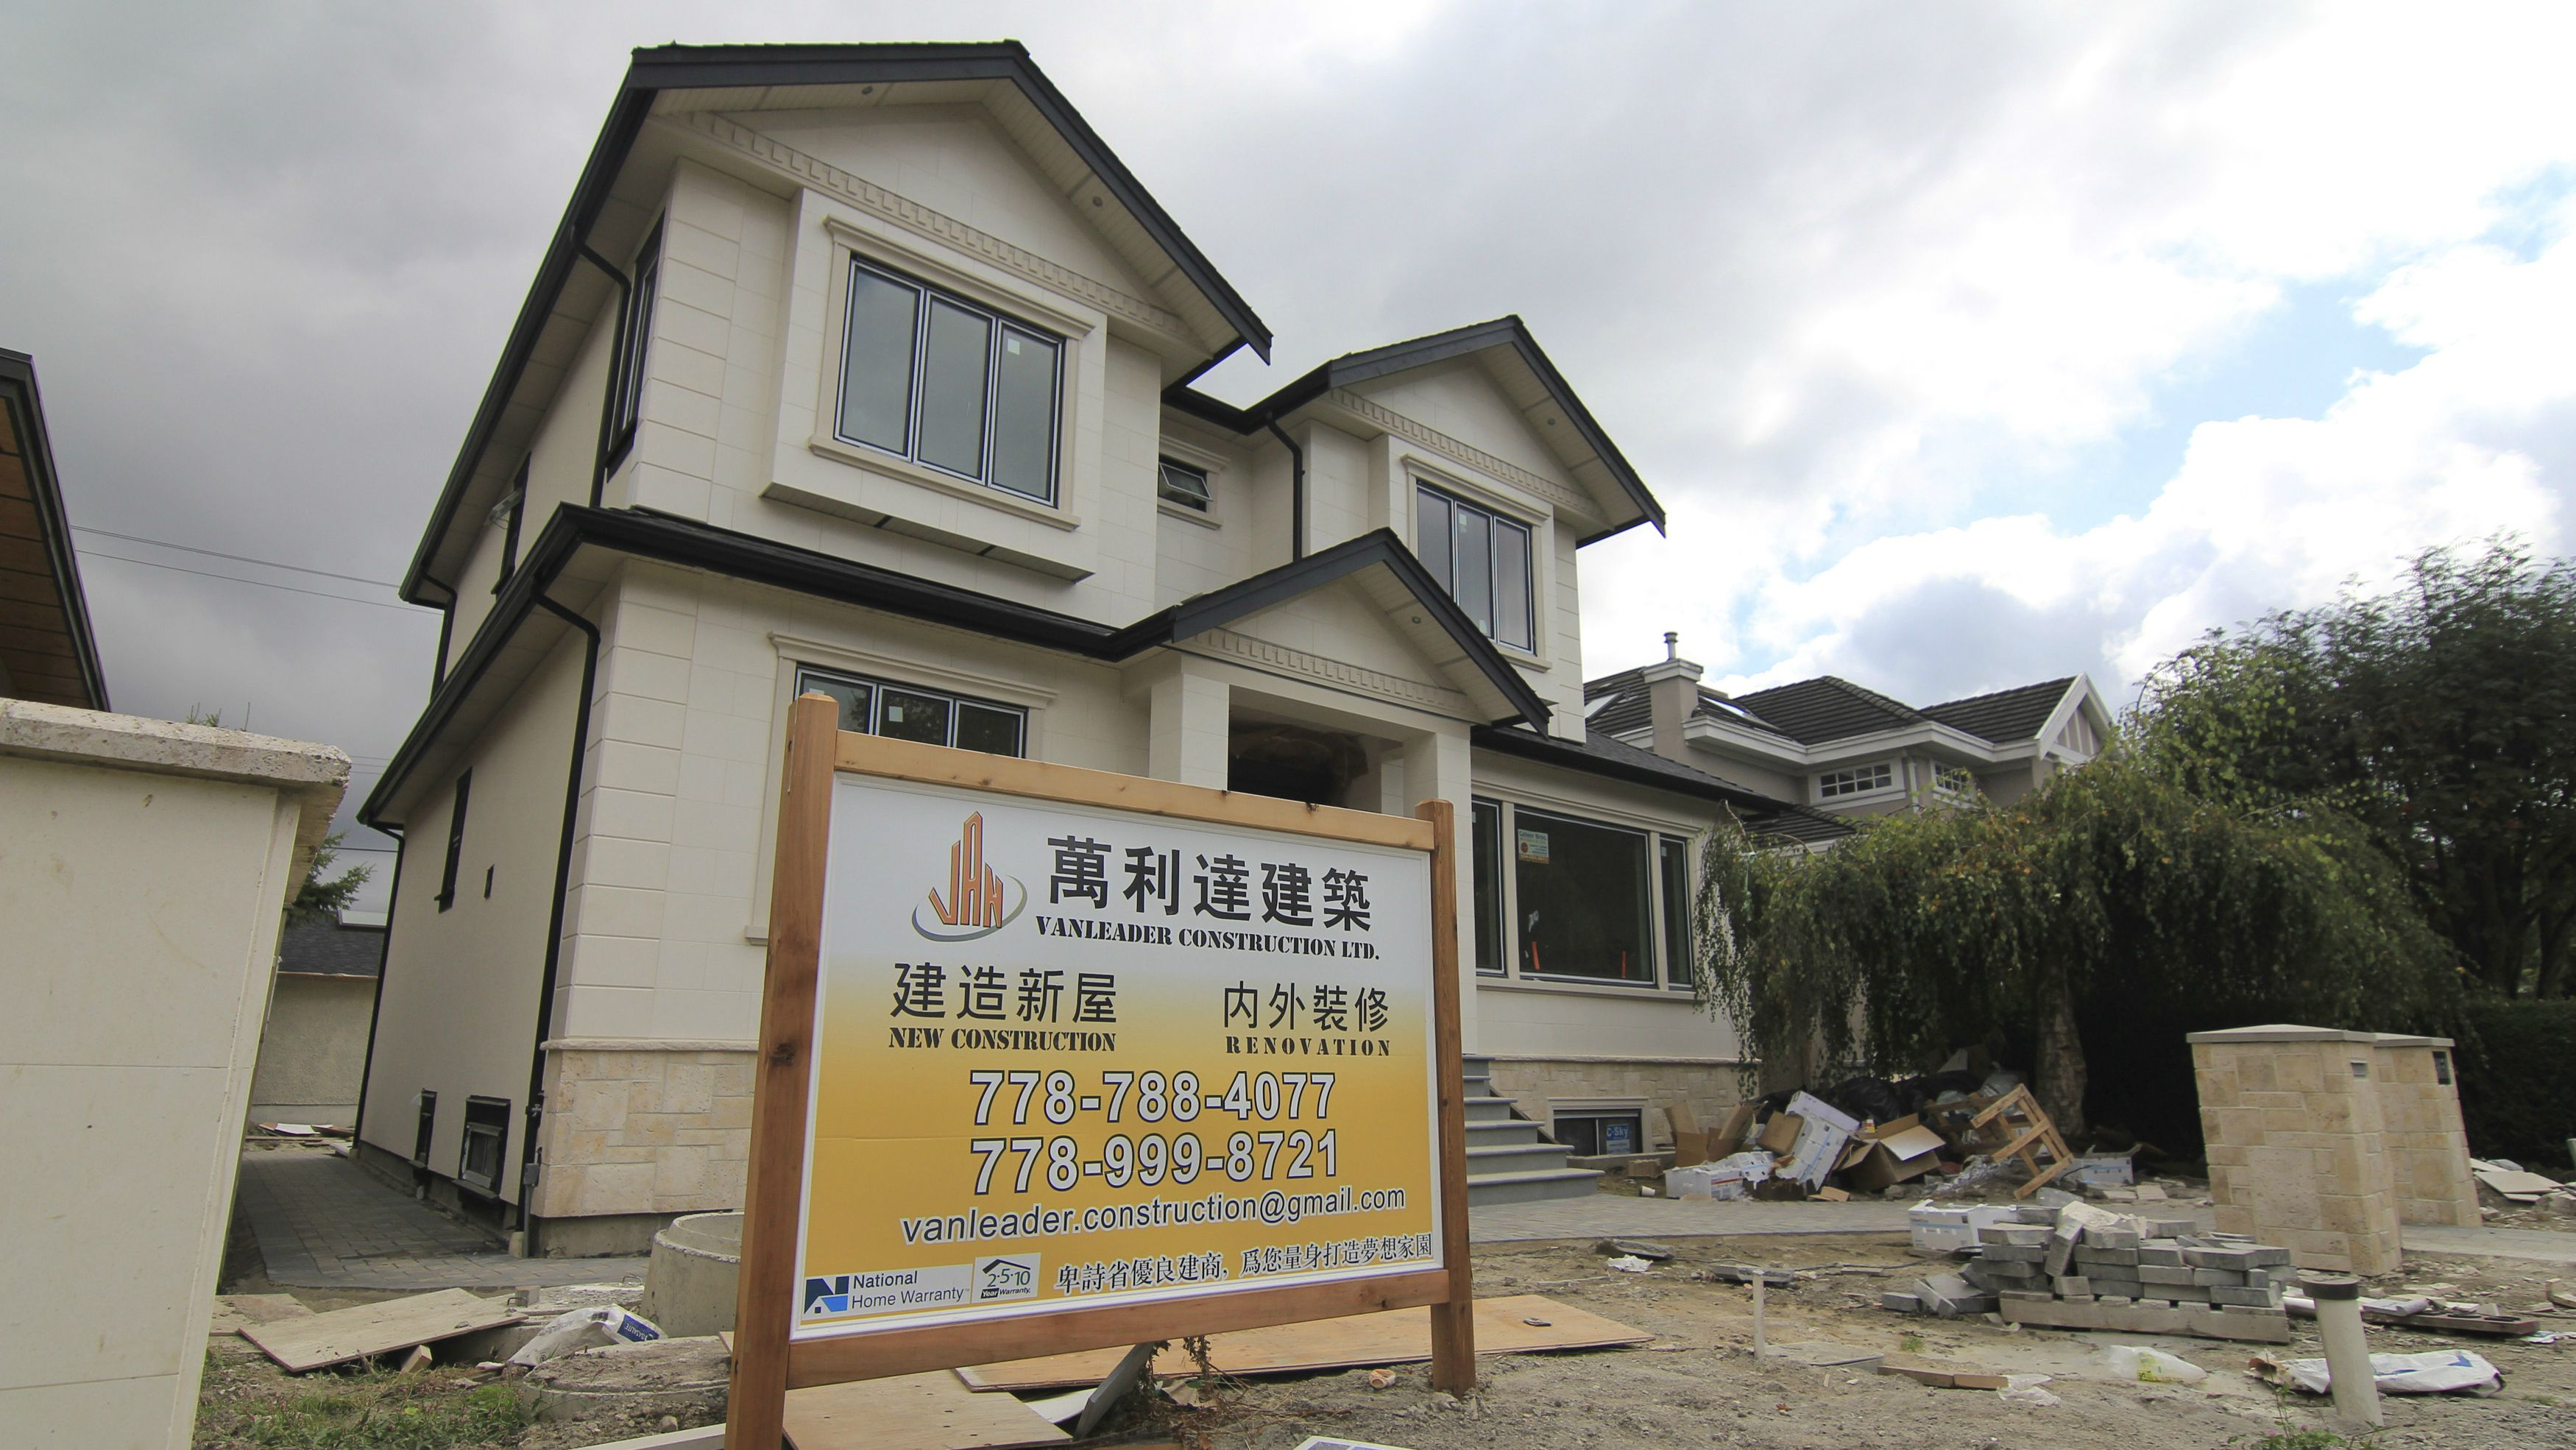 A contractor's sign stands outside a mansion currently under construction in a Vancouver neighbourhood popular with Chinese buyers September 9, 2014. Chinese investors' global hunt for prime real estate is helping drive Vancouver home prices to record highs and the city, long among top destinations for wealthy mainland buyers, is feeling the bonanza's unwelcome side-effects. The latest wave of Chinese money is flowing into luxury hot spots. But it has also started driving up housing costs elsewhere in a city which already ranks as North America's least affordable urban market. Picture taken September 9. REUTERS/Julie Gordon (CANADA - Tags: REAL ESTATE BUSINESS)